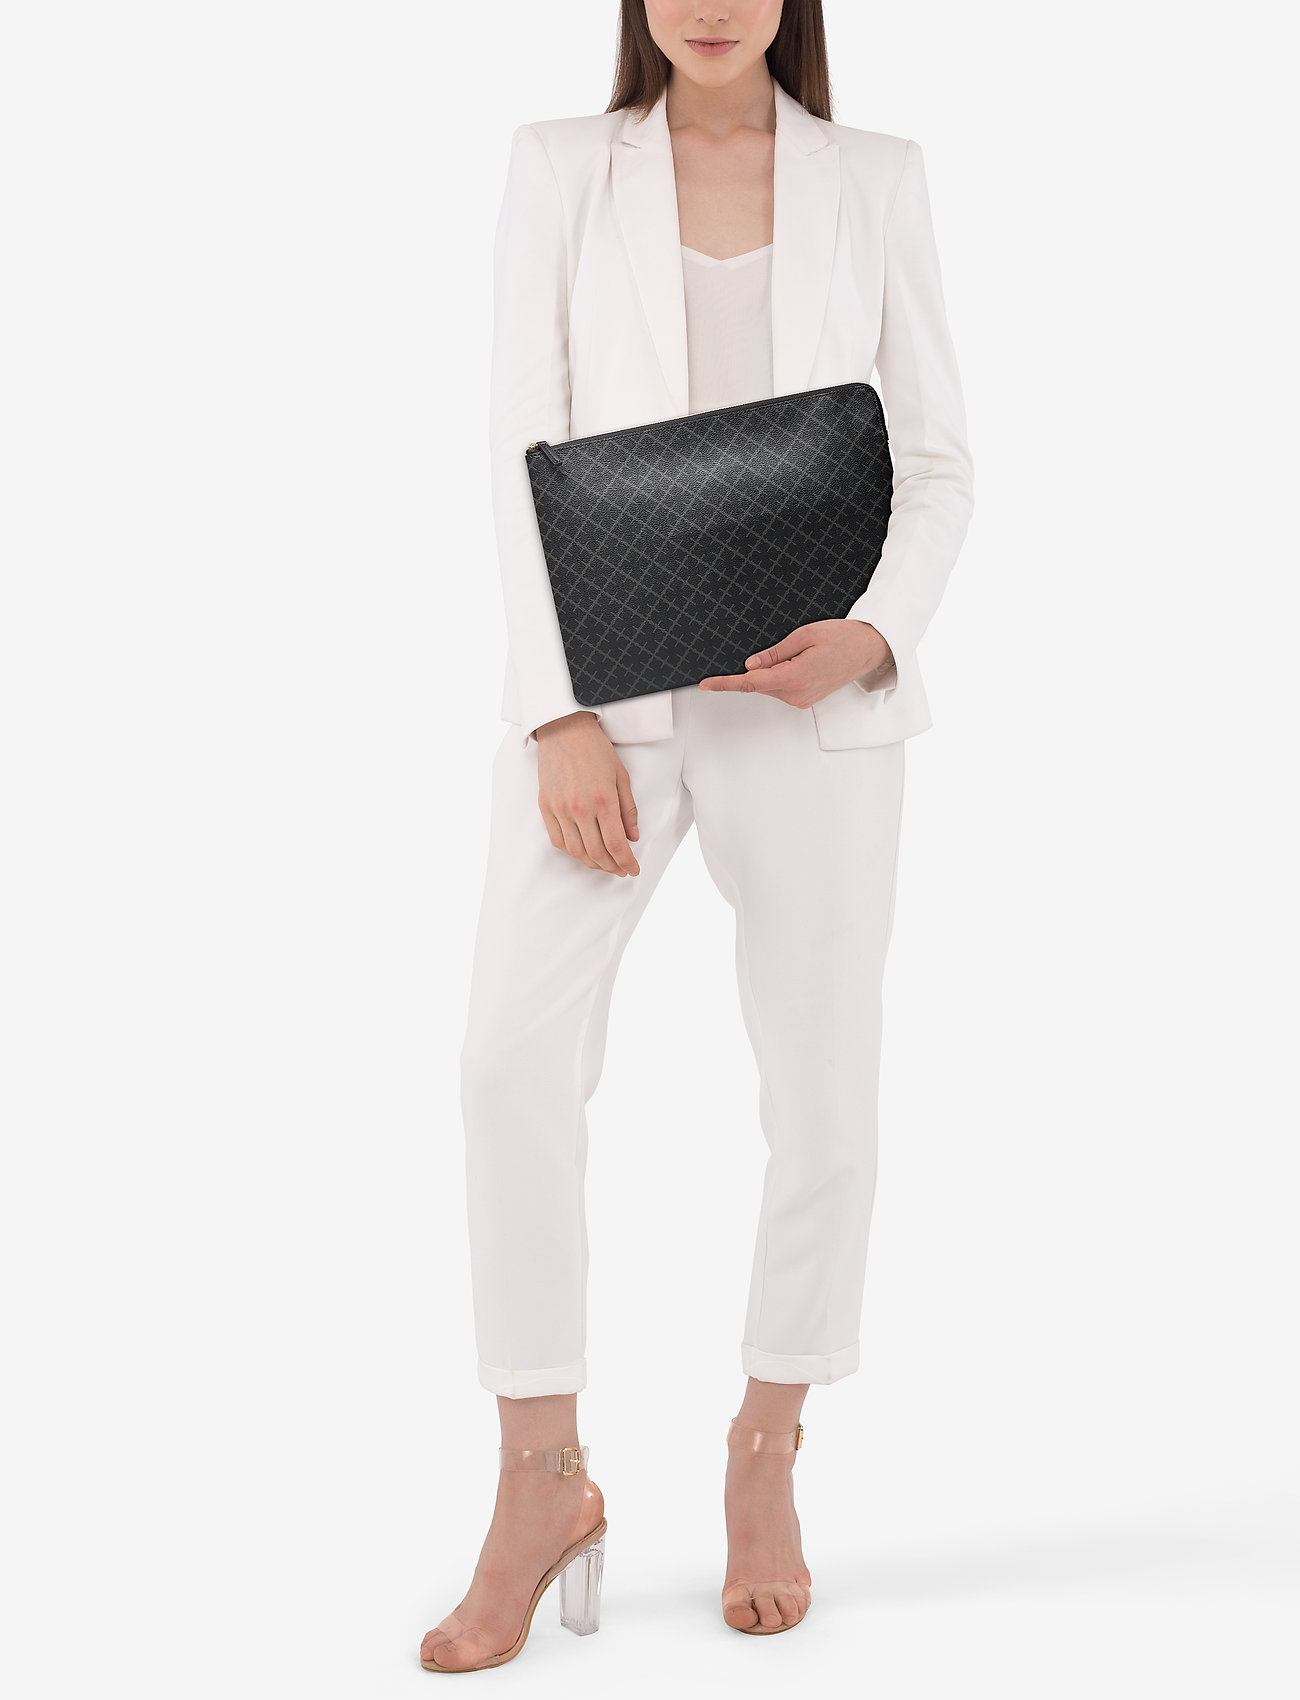 By Malene Birger IVY LAPTOP - CHARCOAL